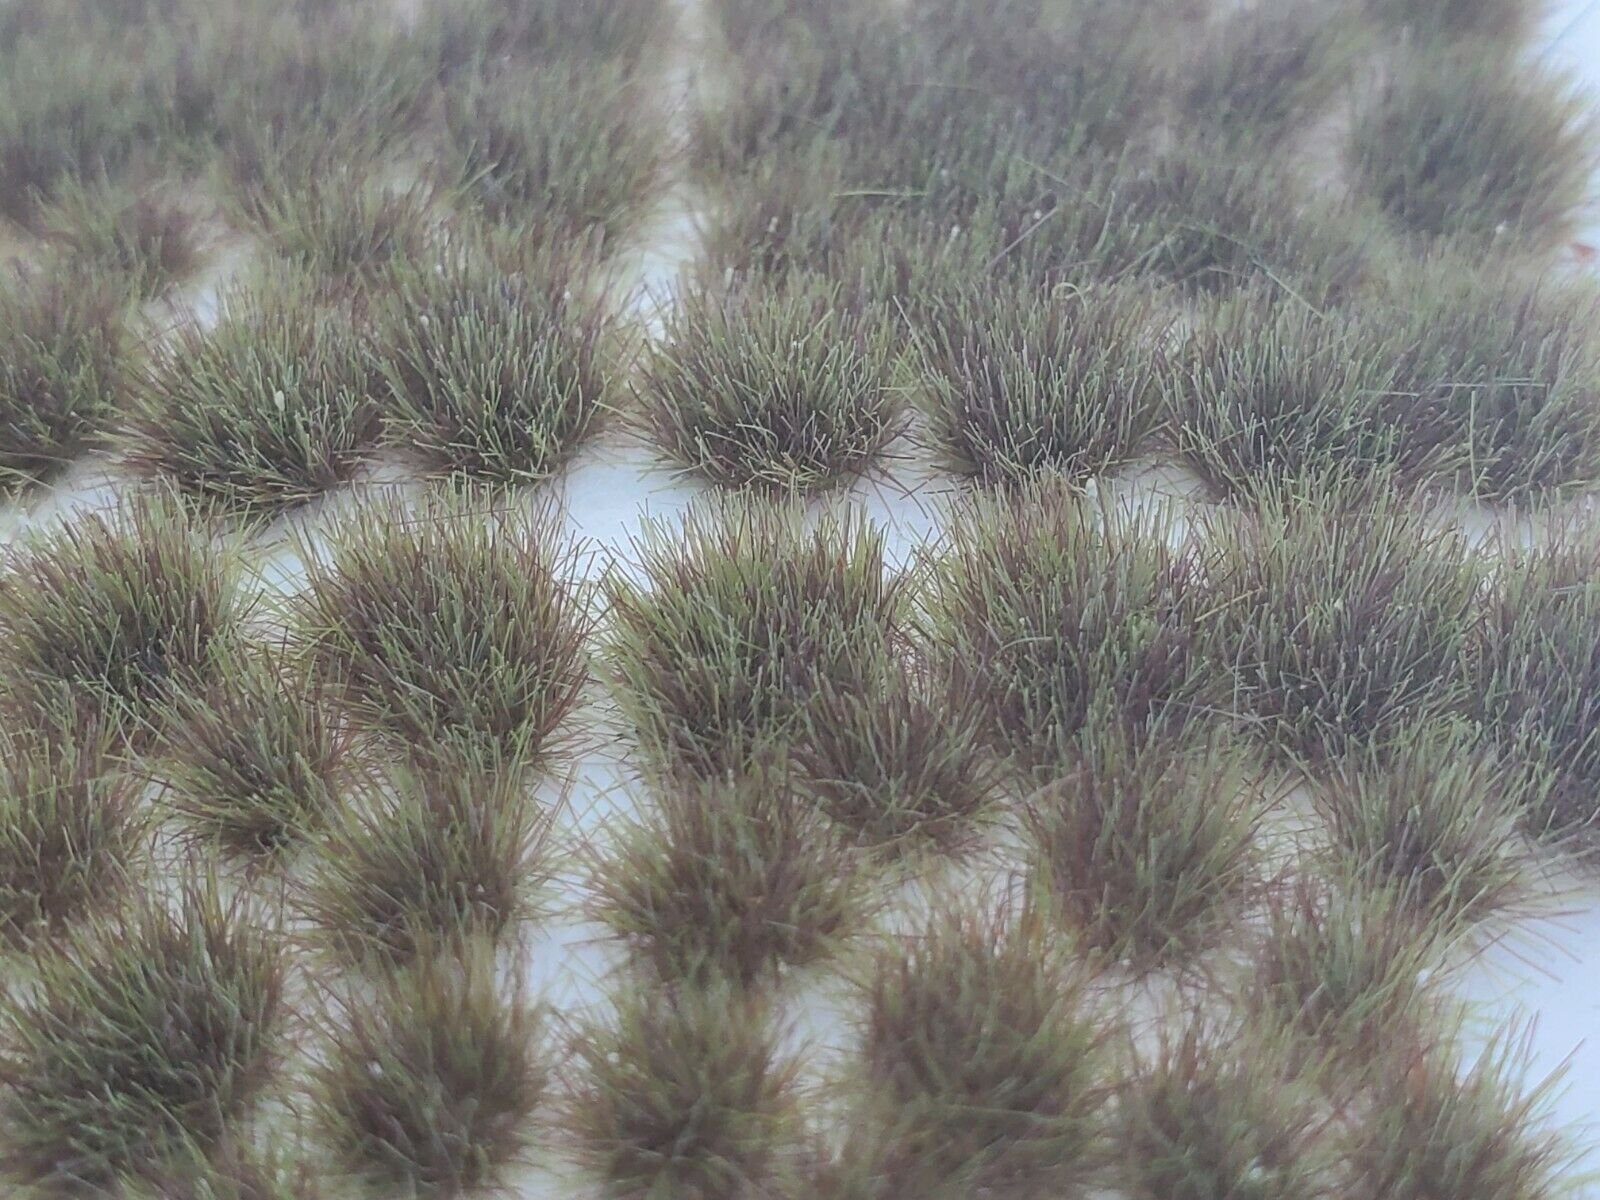 Self Adhesive Static Grass Tufts- Miniature Scenery/Terrain-Dry Steppe Grass  4